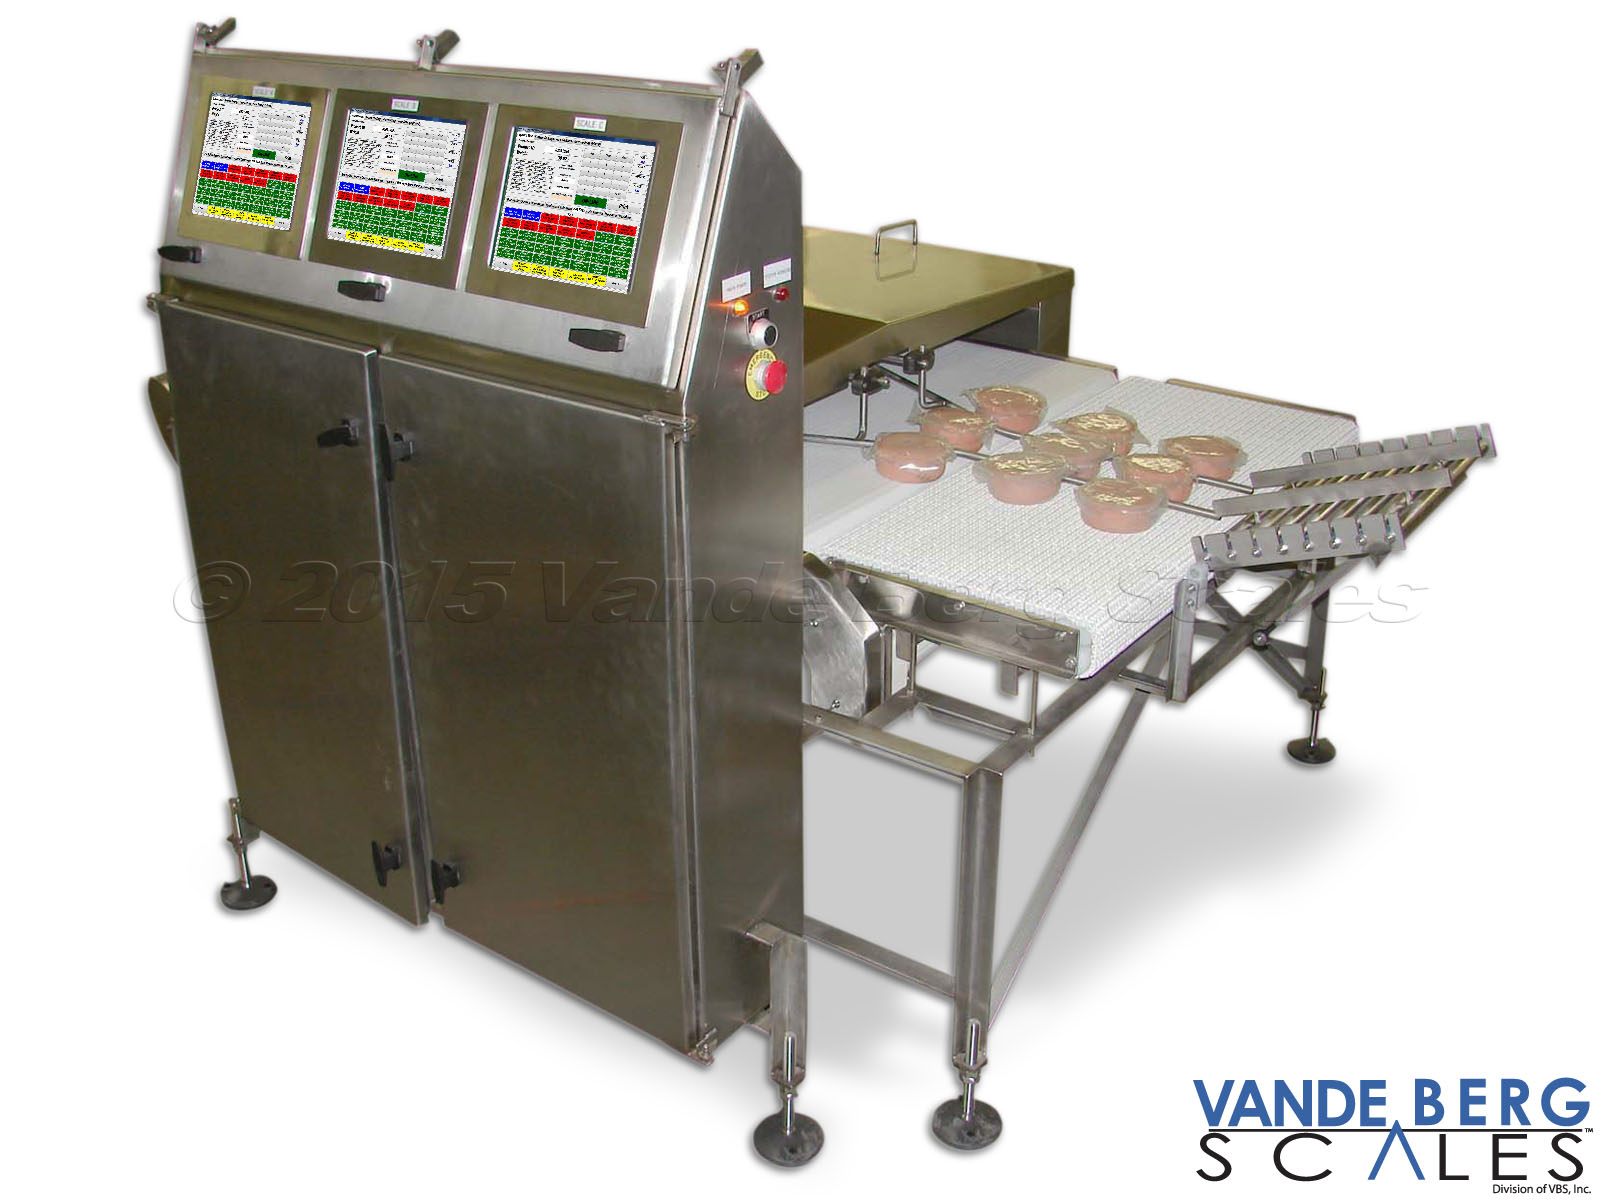 Three lane checkweigher with touchscreen HMI provides comprehensive data collection and reporting